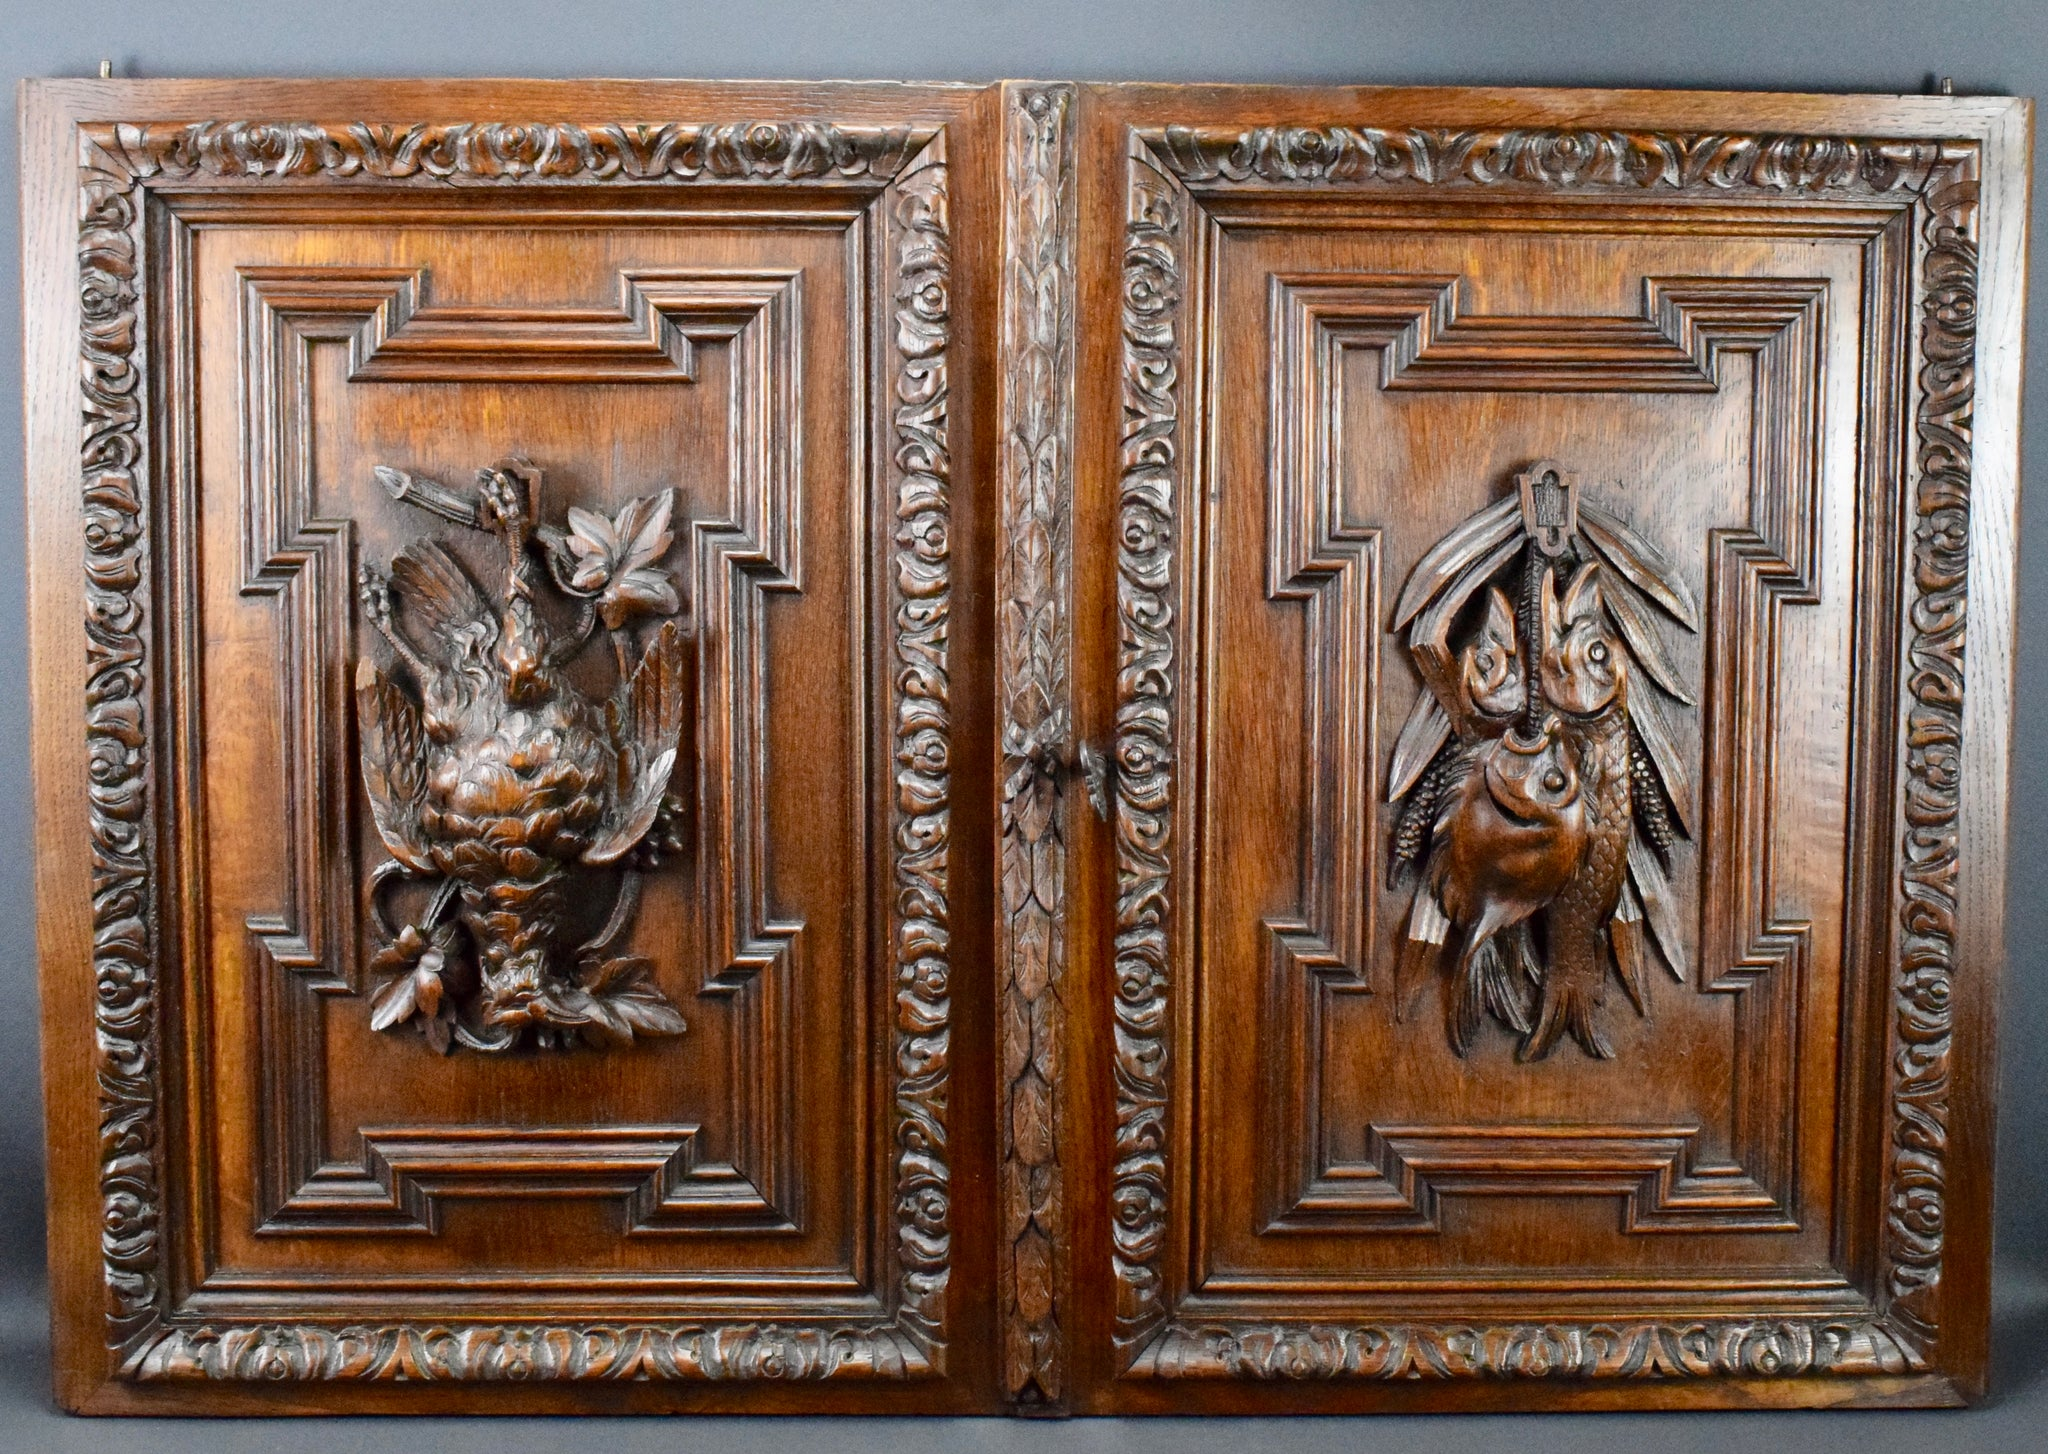 Pair of Black Forest Doors - Charmantiques